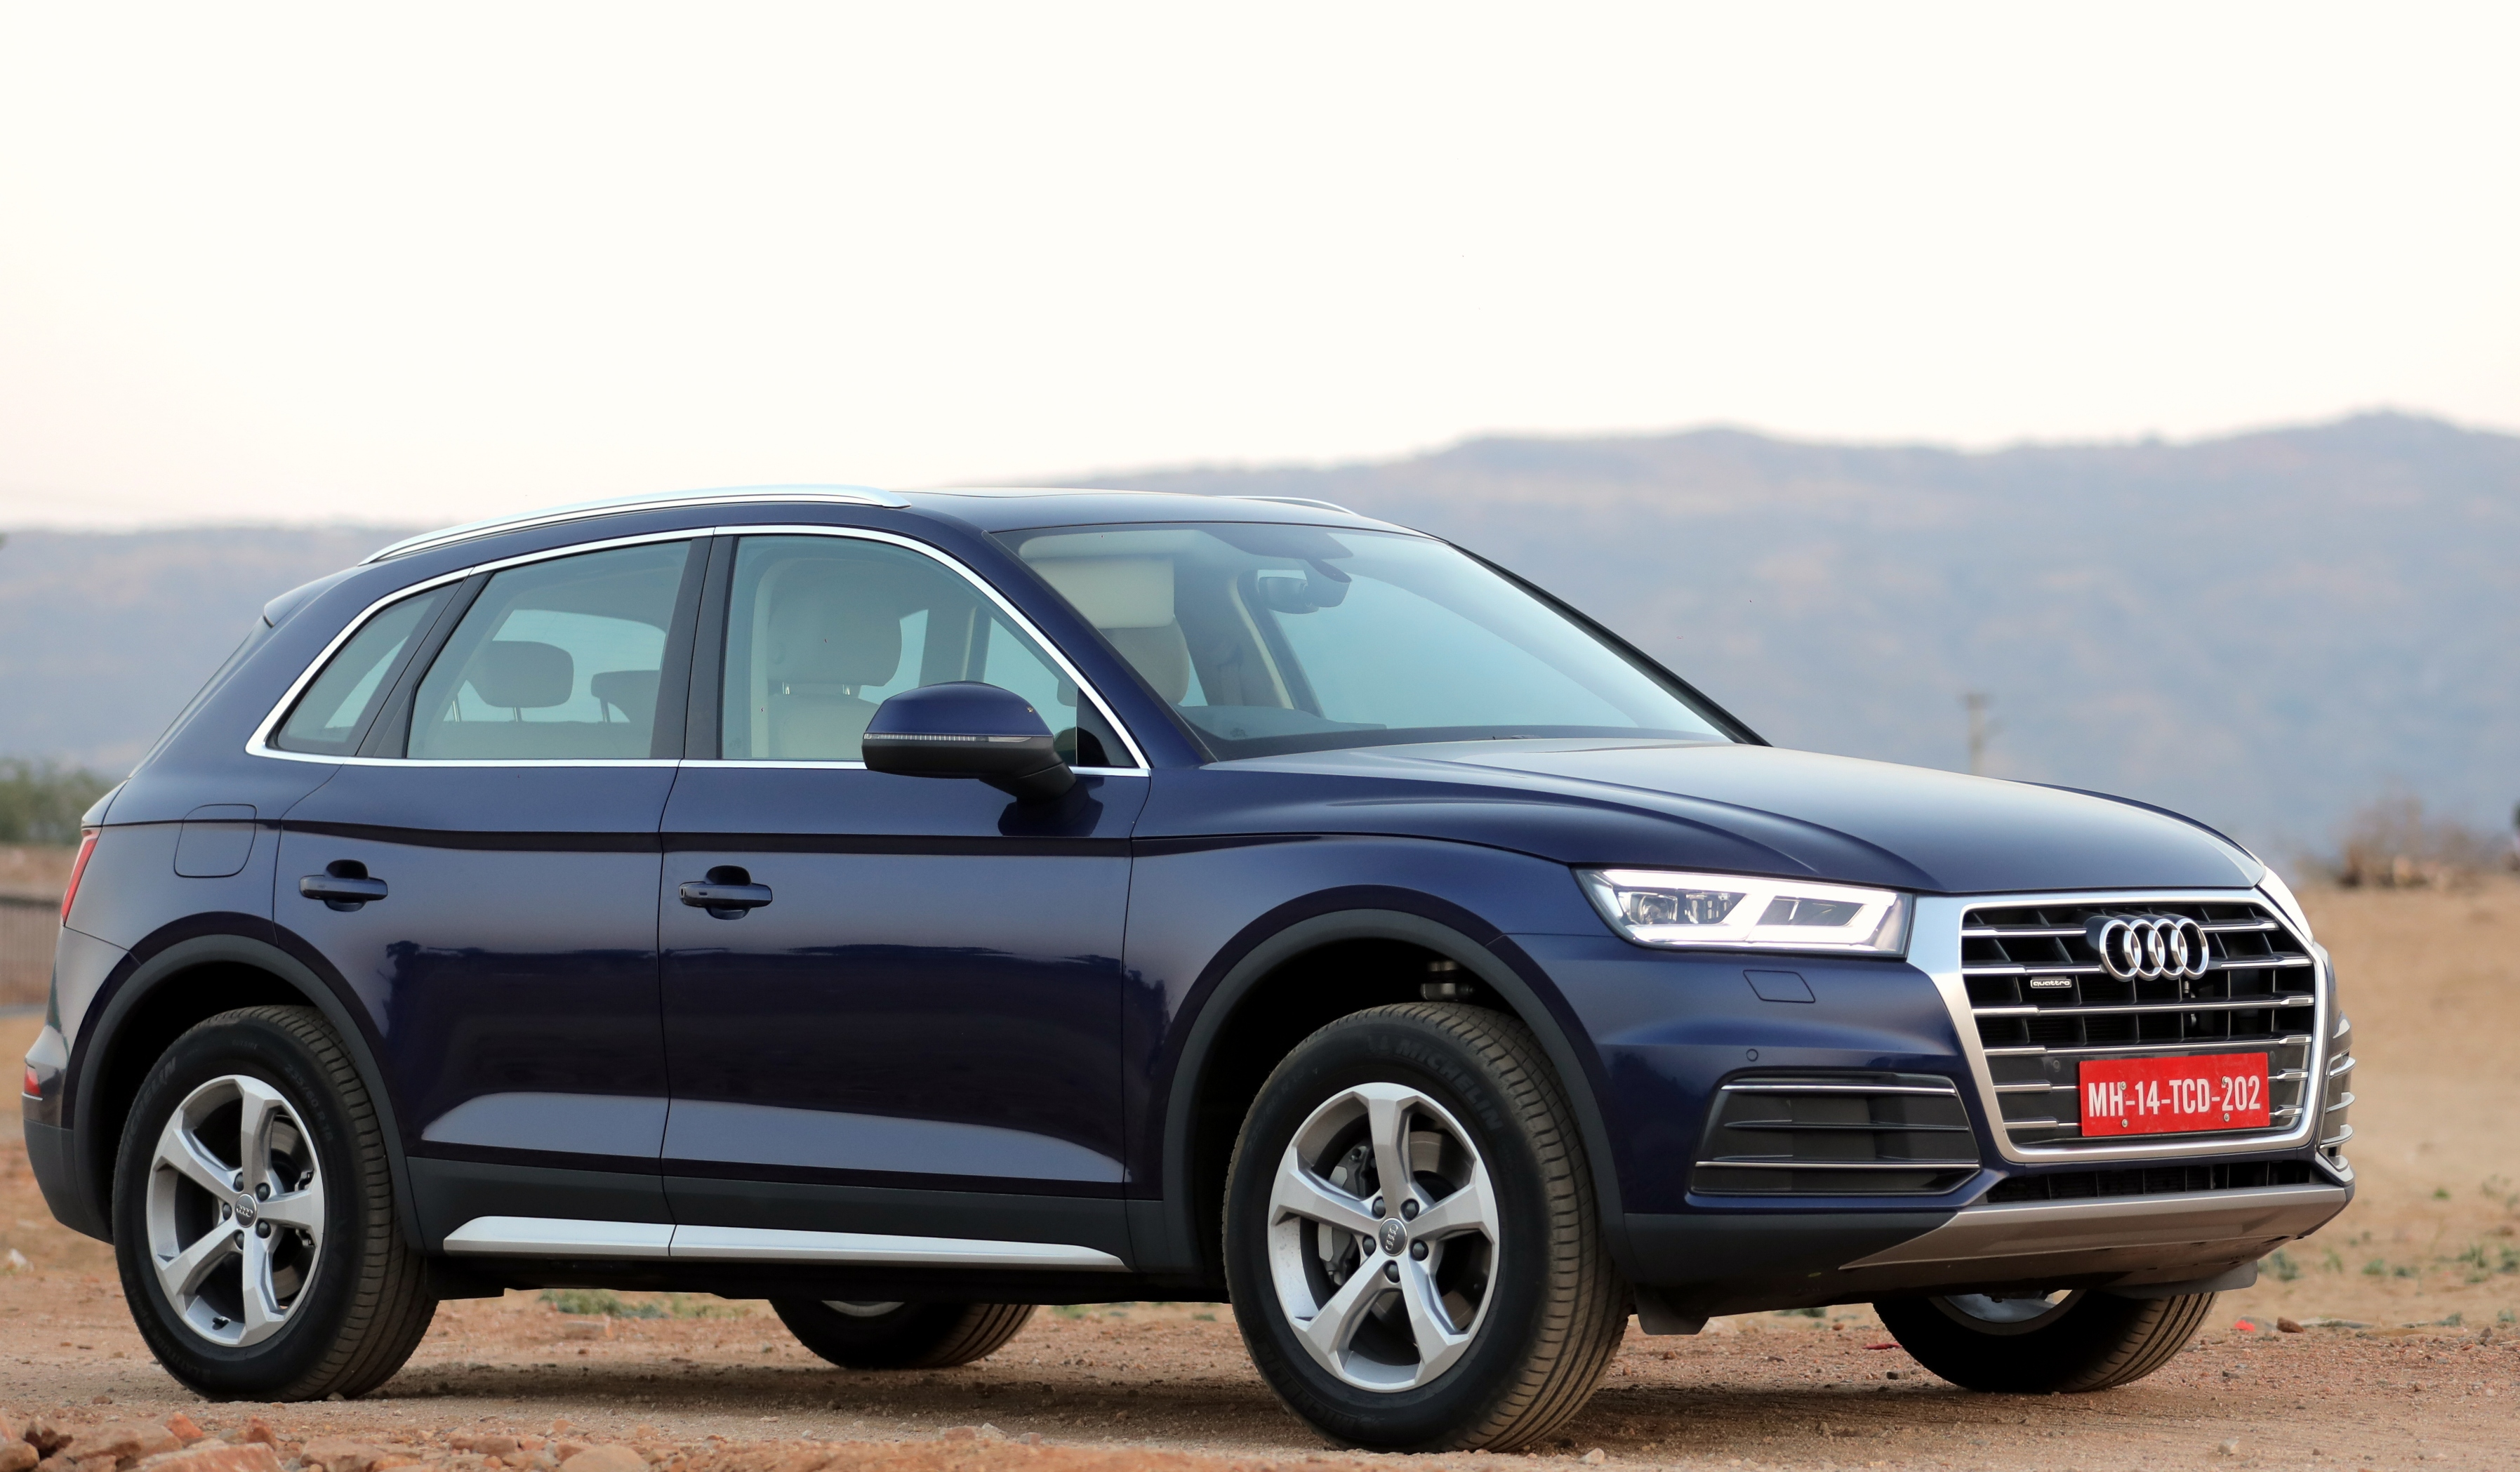 Audi Cars In India Audi Car Models Variants With Price Audi Cars Reviews Photos More At India Com